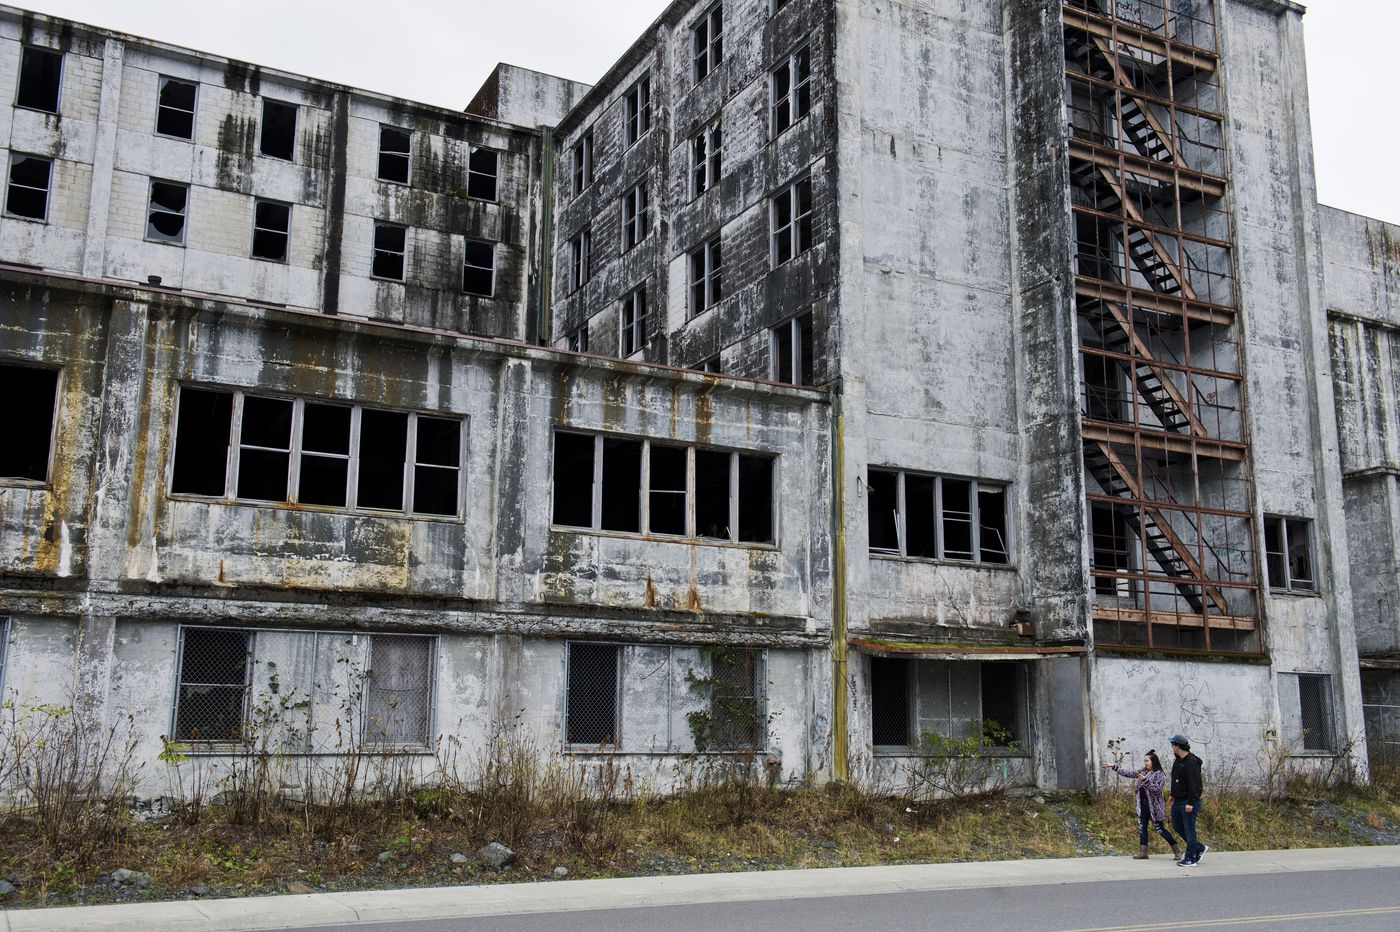 Whittier visitors Breanna Baldwin and Chase Cushingham walk by the Buckner Building in Whittier on Oct. 10, 2017. The abandoned structure once housed hundreds of military personnel in the 1950s. (Marc Lester / Alaska Dispatch News)